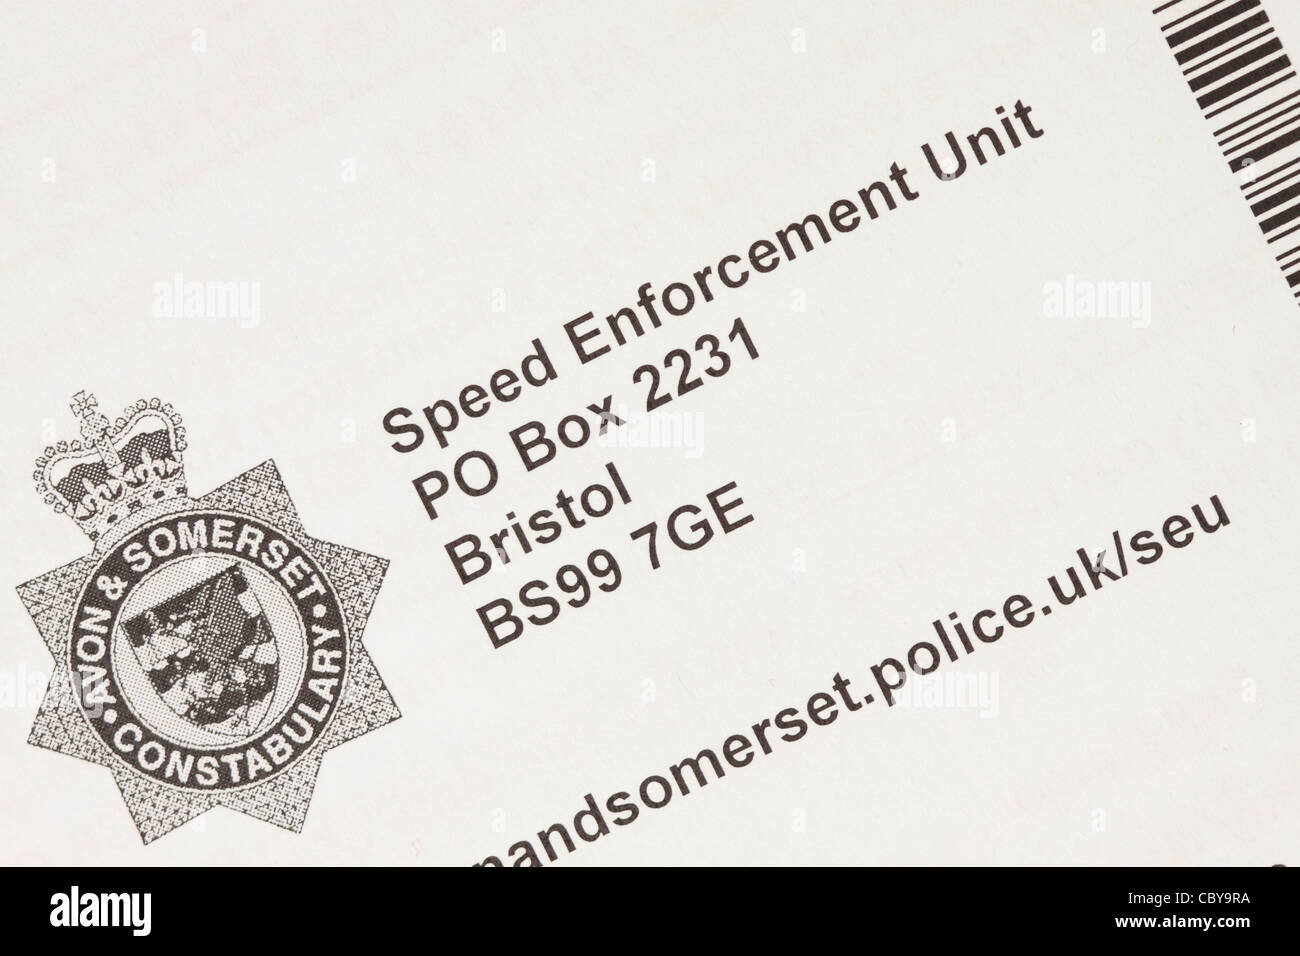 Speed Enforcement Unit Avon and Somerset Constabulary letter - Stock Image